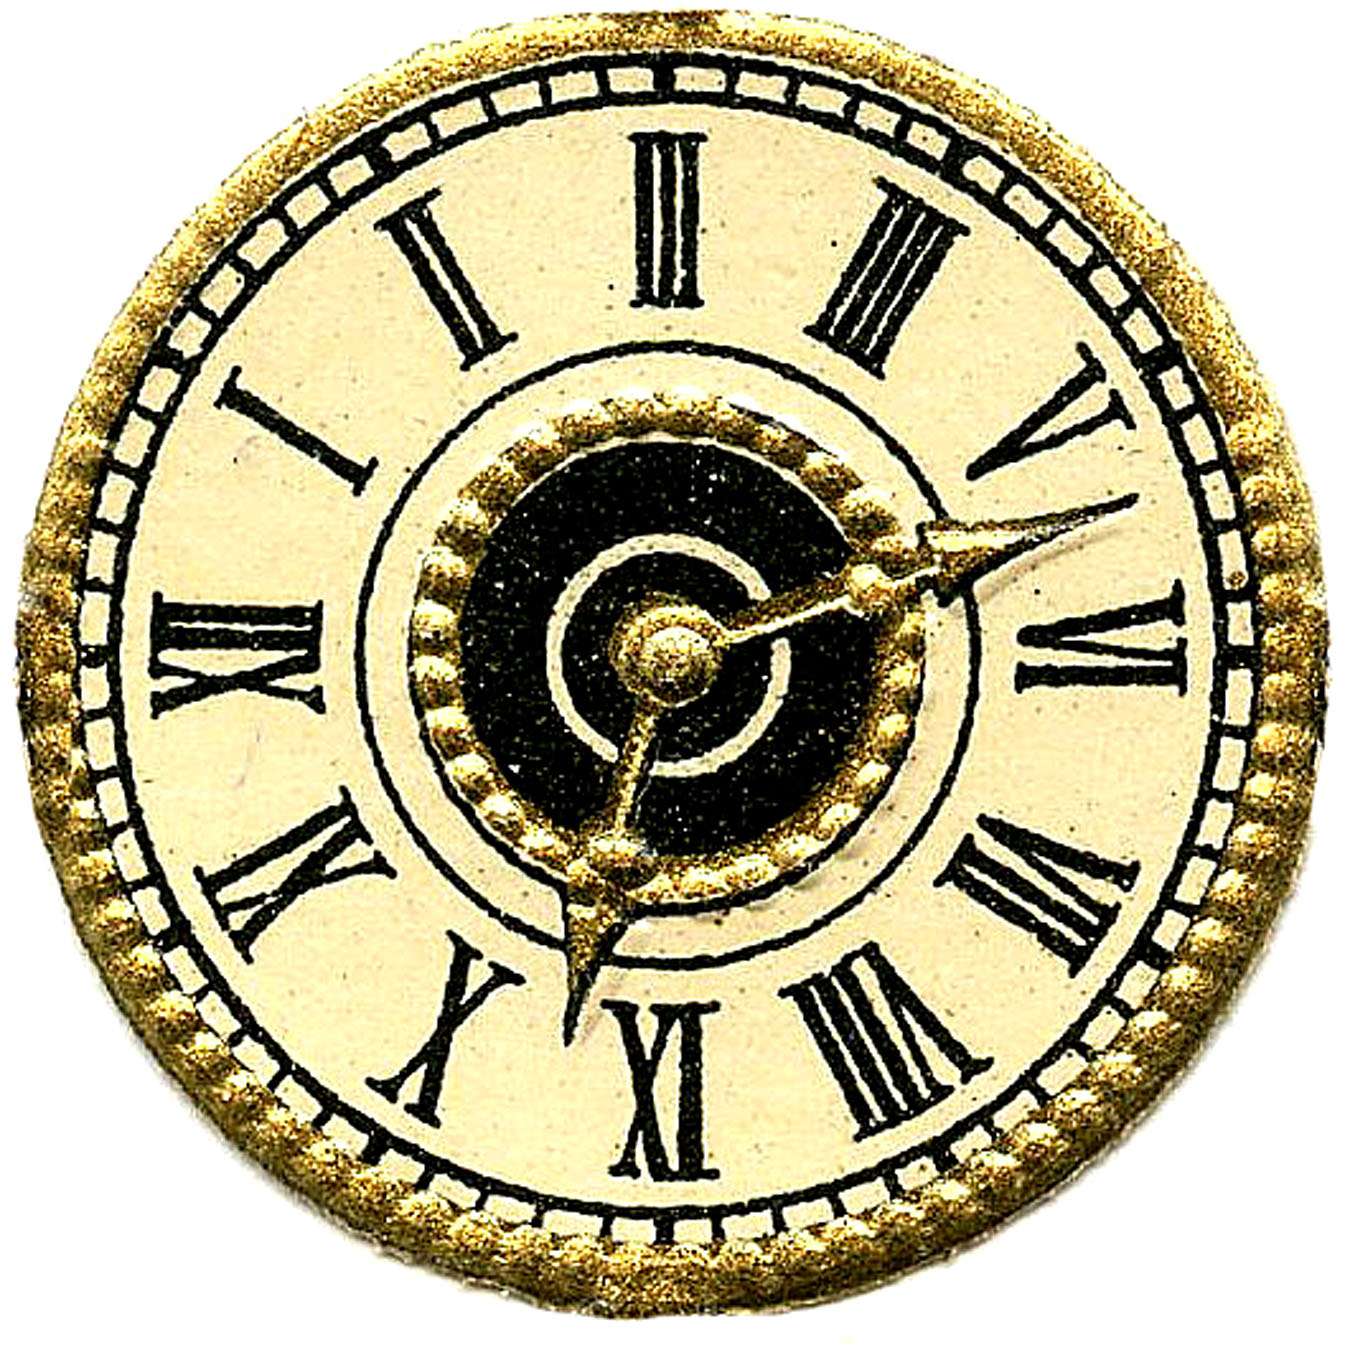 clipart of watches and clocks - photo #38